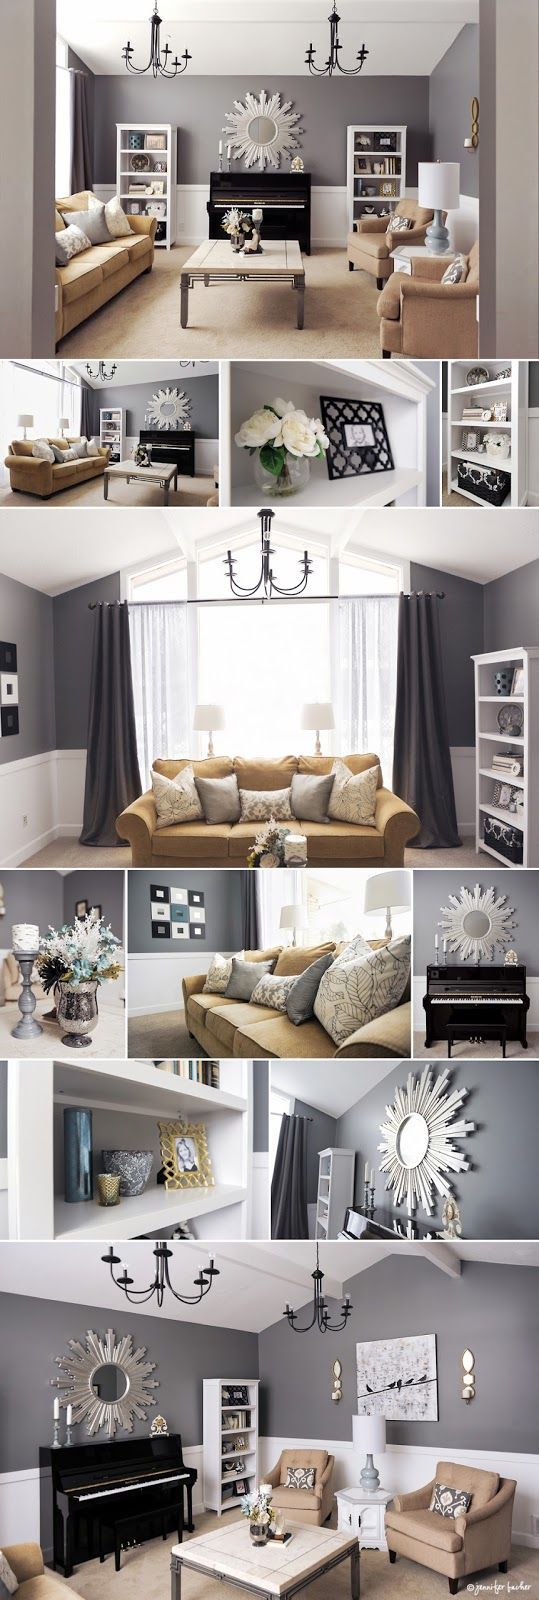 Ballard Design, Gardner Village, Down To Earth, Gray, White, Black,. Living  Room Decor ...